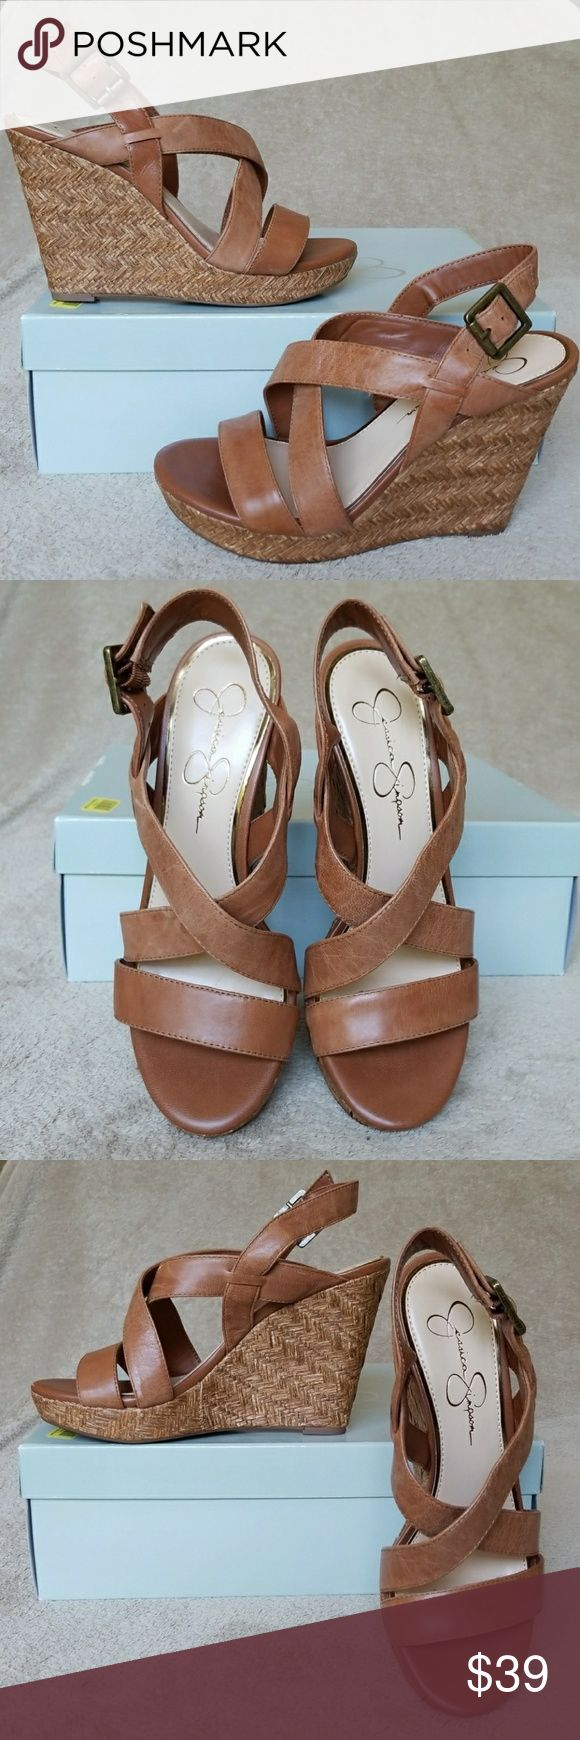 New Jessica Simpson tan strappy wedge sandals New Jessica Simpson woven tan wedge strappy leather sandals. Great and stylish, in a beautiful camel color with woven bottoms that surround the wedge heel that is 4.5in high. New never used still with box.(these are size 8.5, box says 9) Jessica Simpson Shoes Wedges